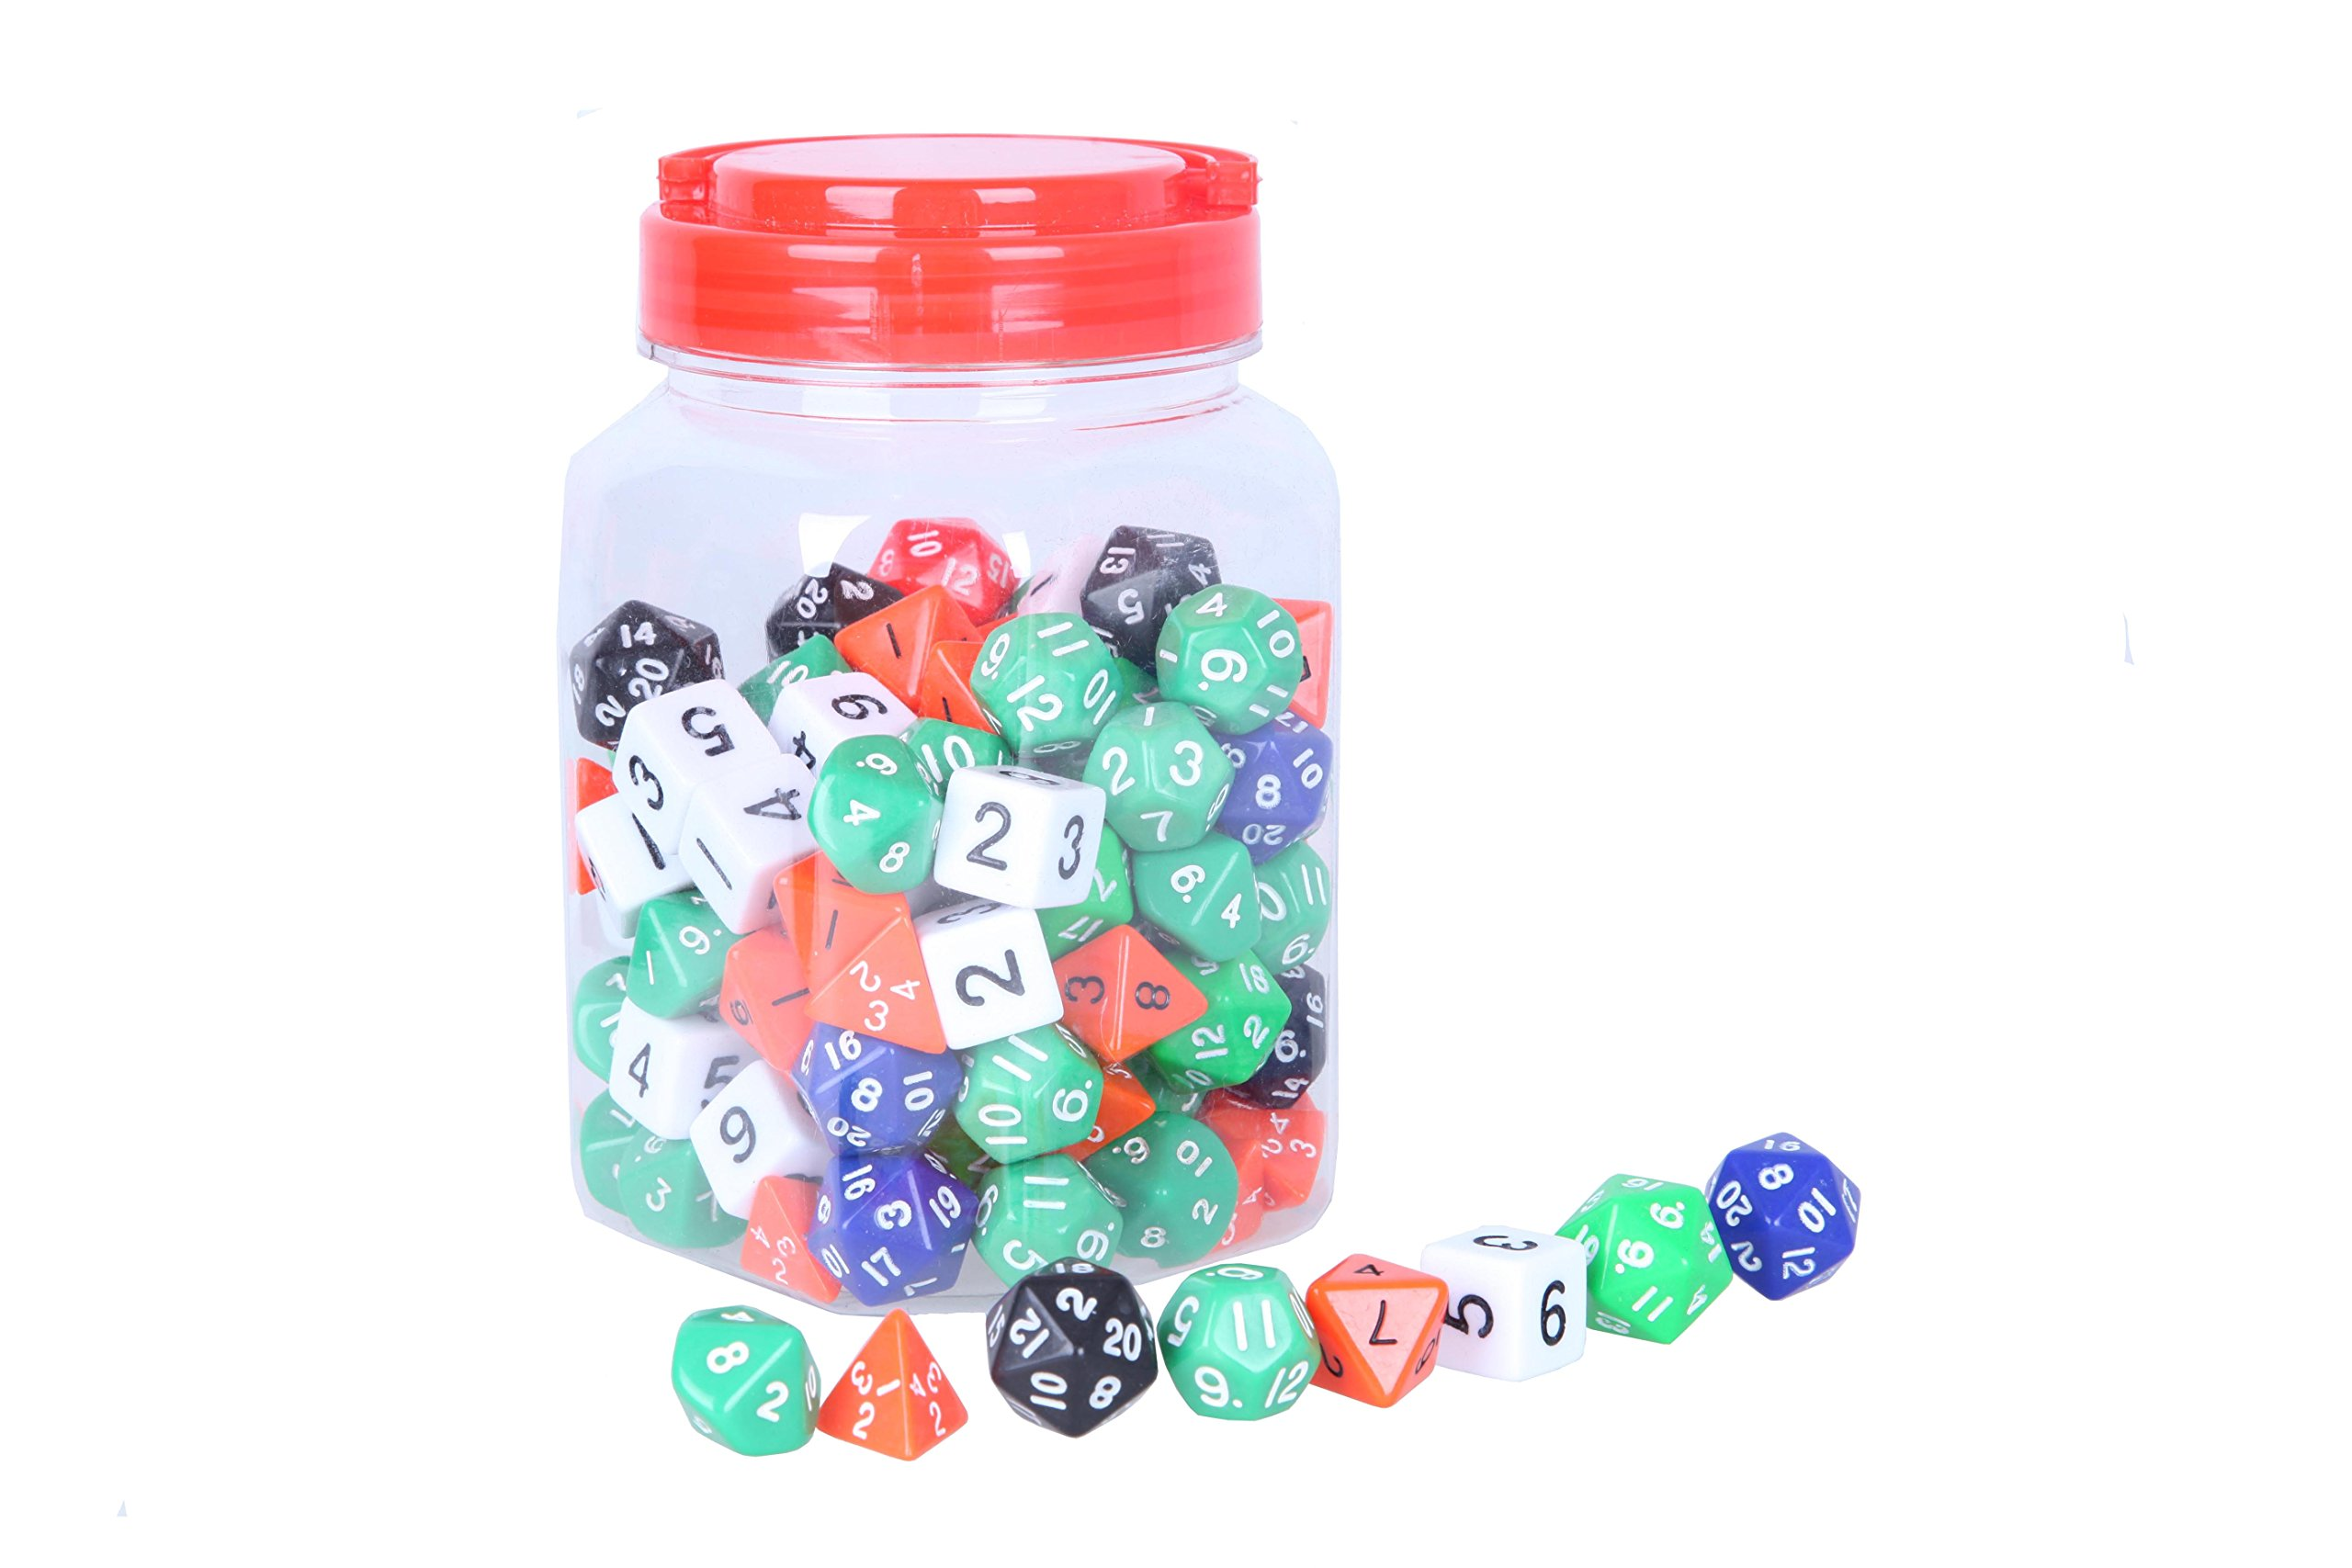 Polyhedral Dice Set - Assorted Colors - 4 Sided, 6 Sided, 8 Sided, 10 Sided, 12 Sided, and 20 Sided Included with Jar and Velvet Bag - 120 Count